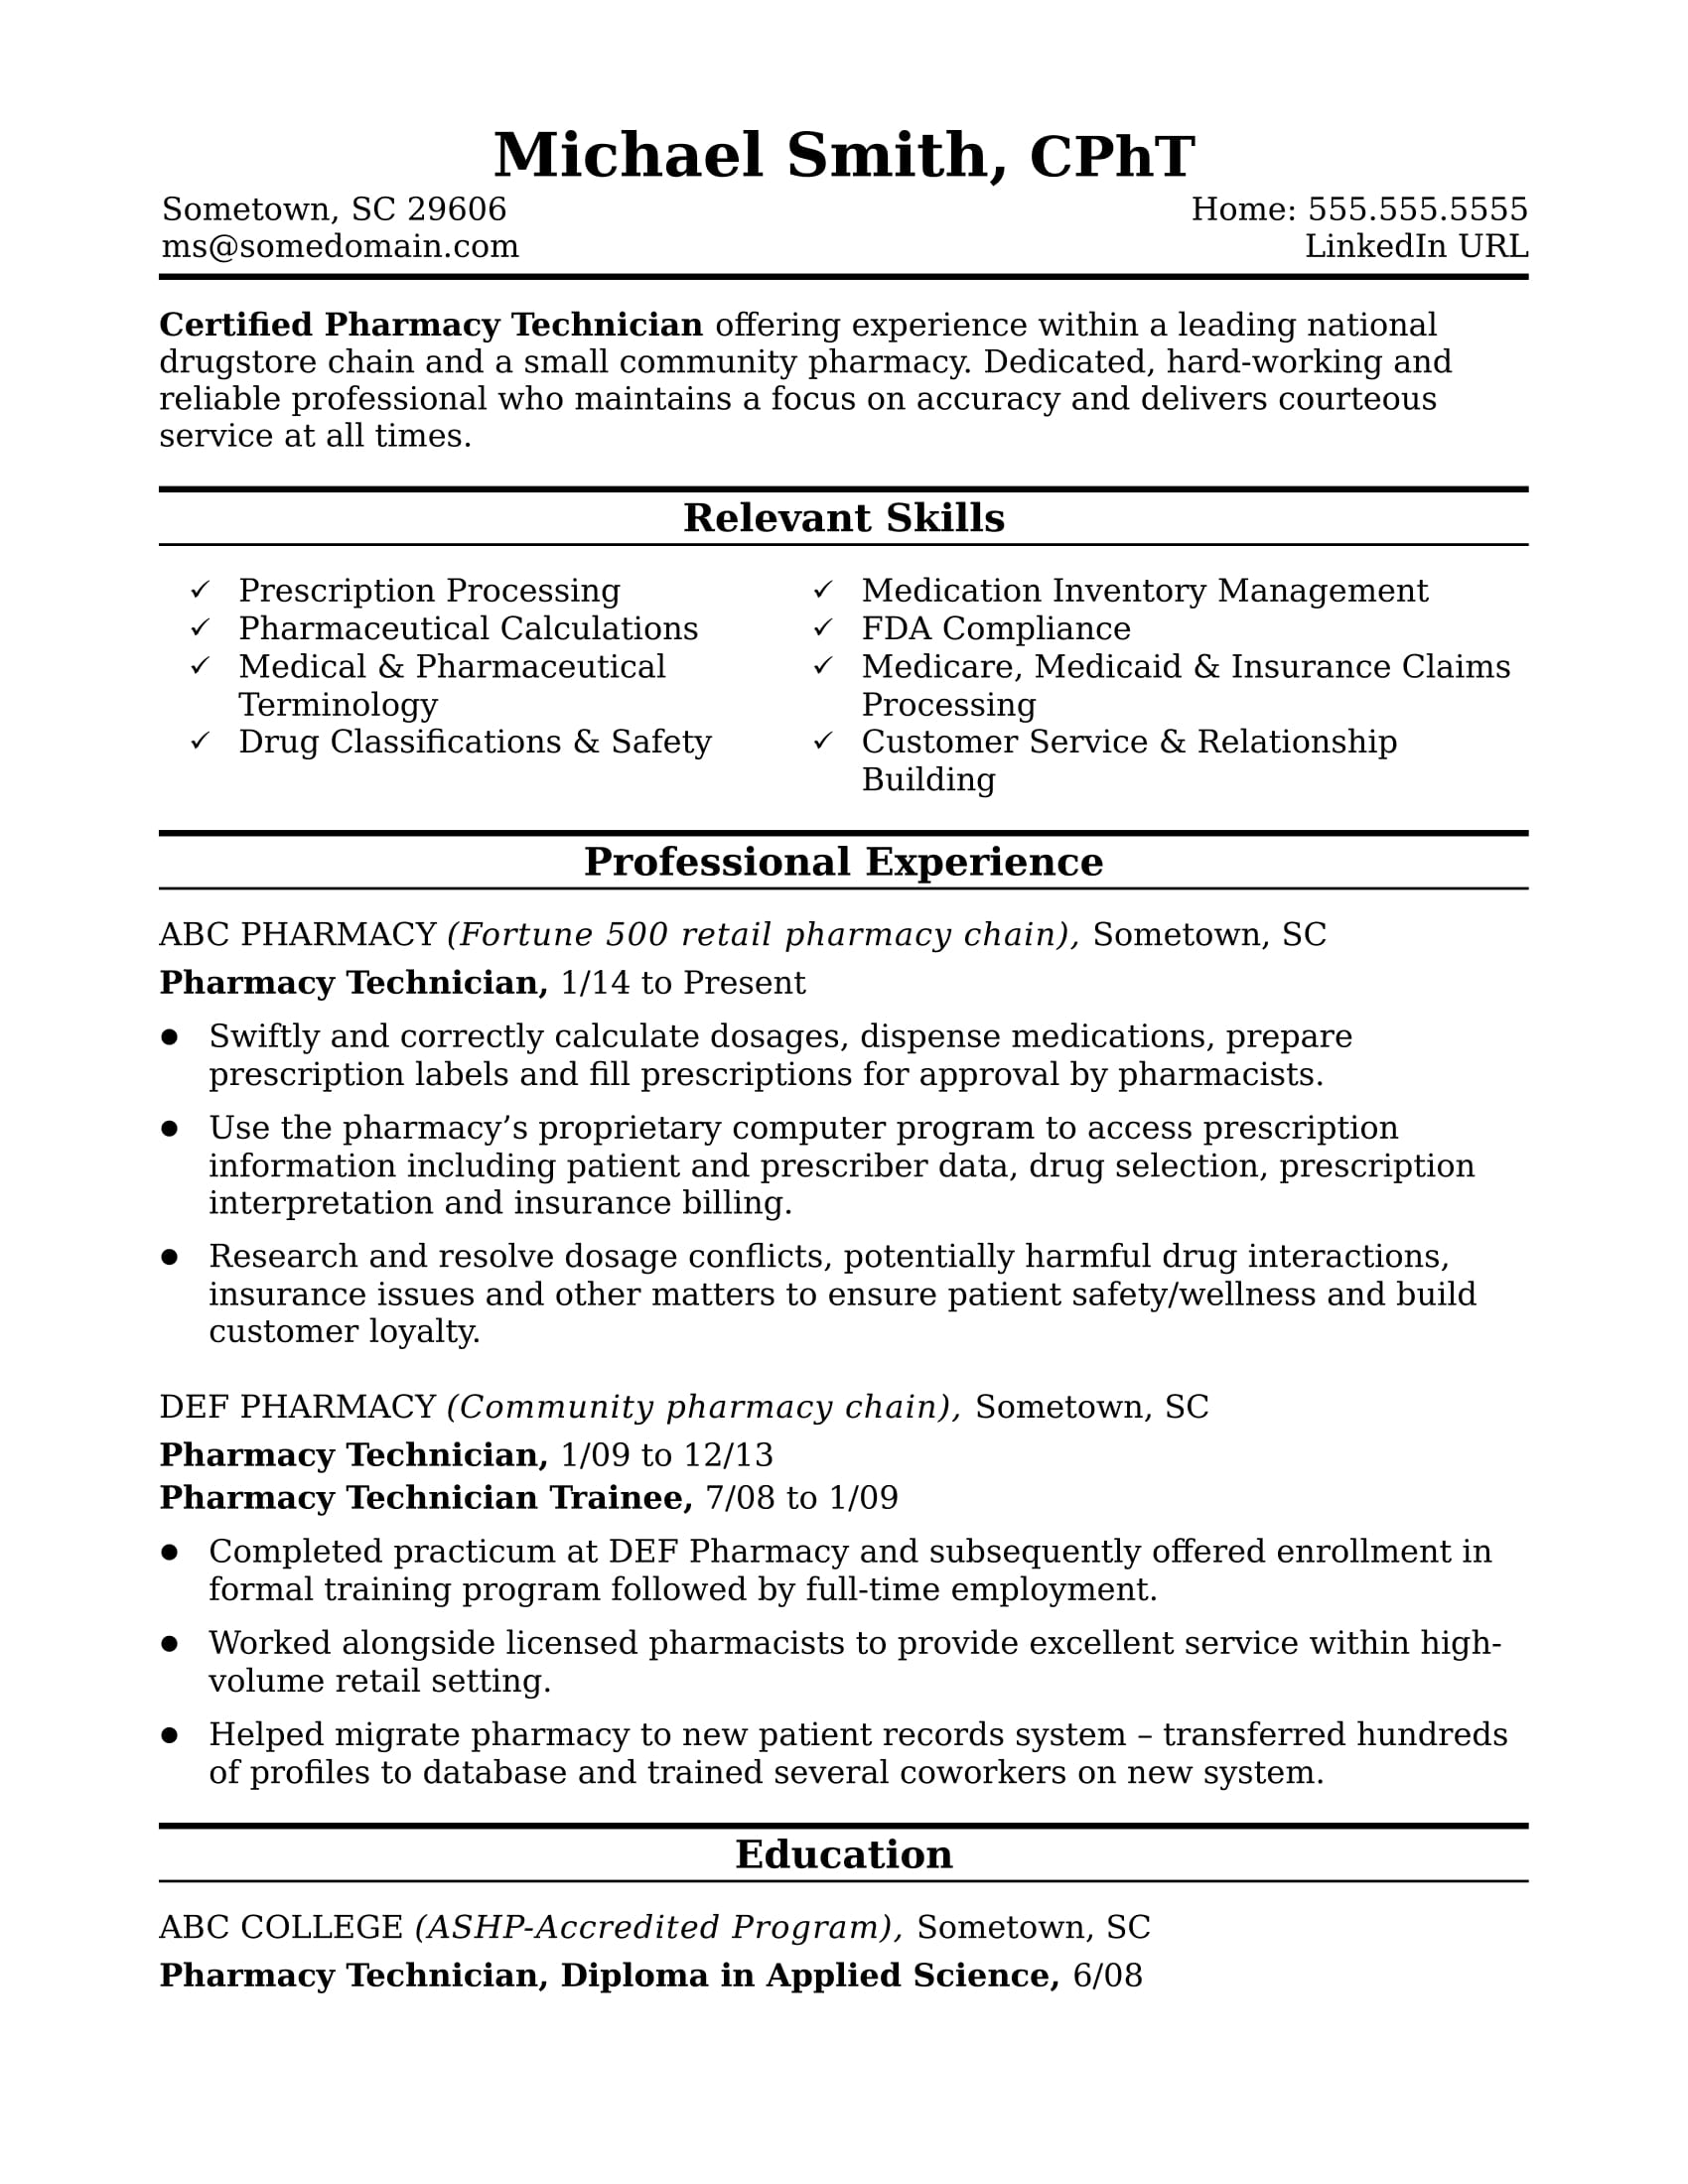 Sample Resume For A Pharmacy Technician  Certification On Resume Example